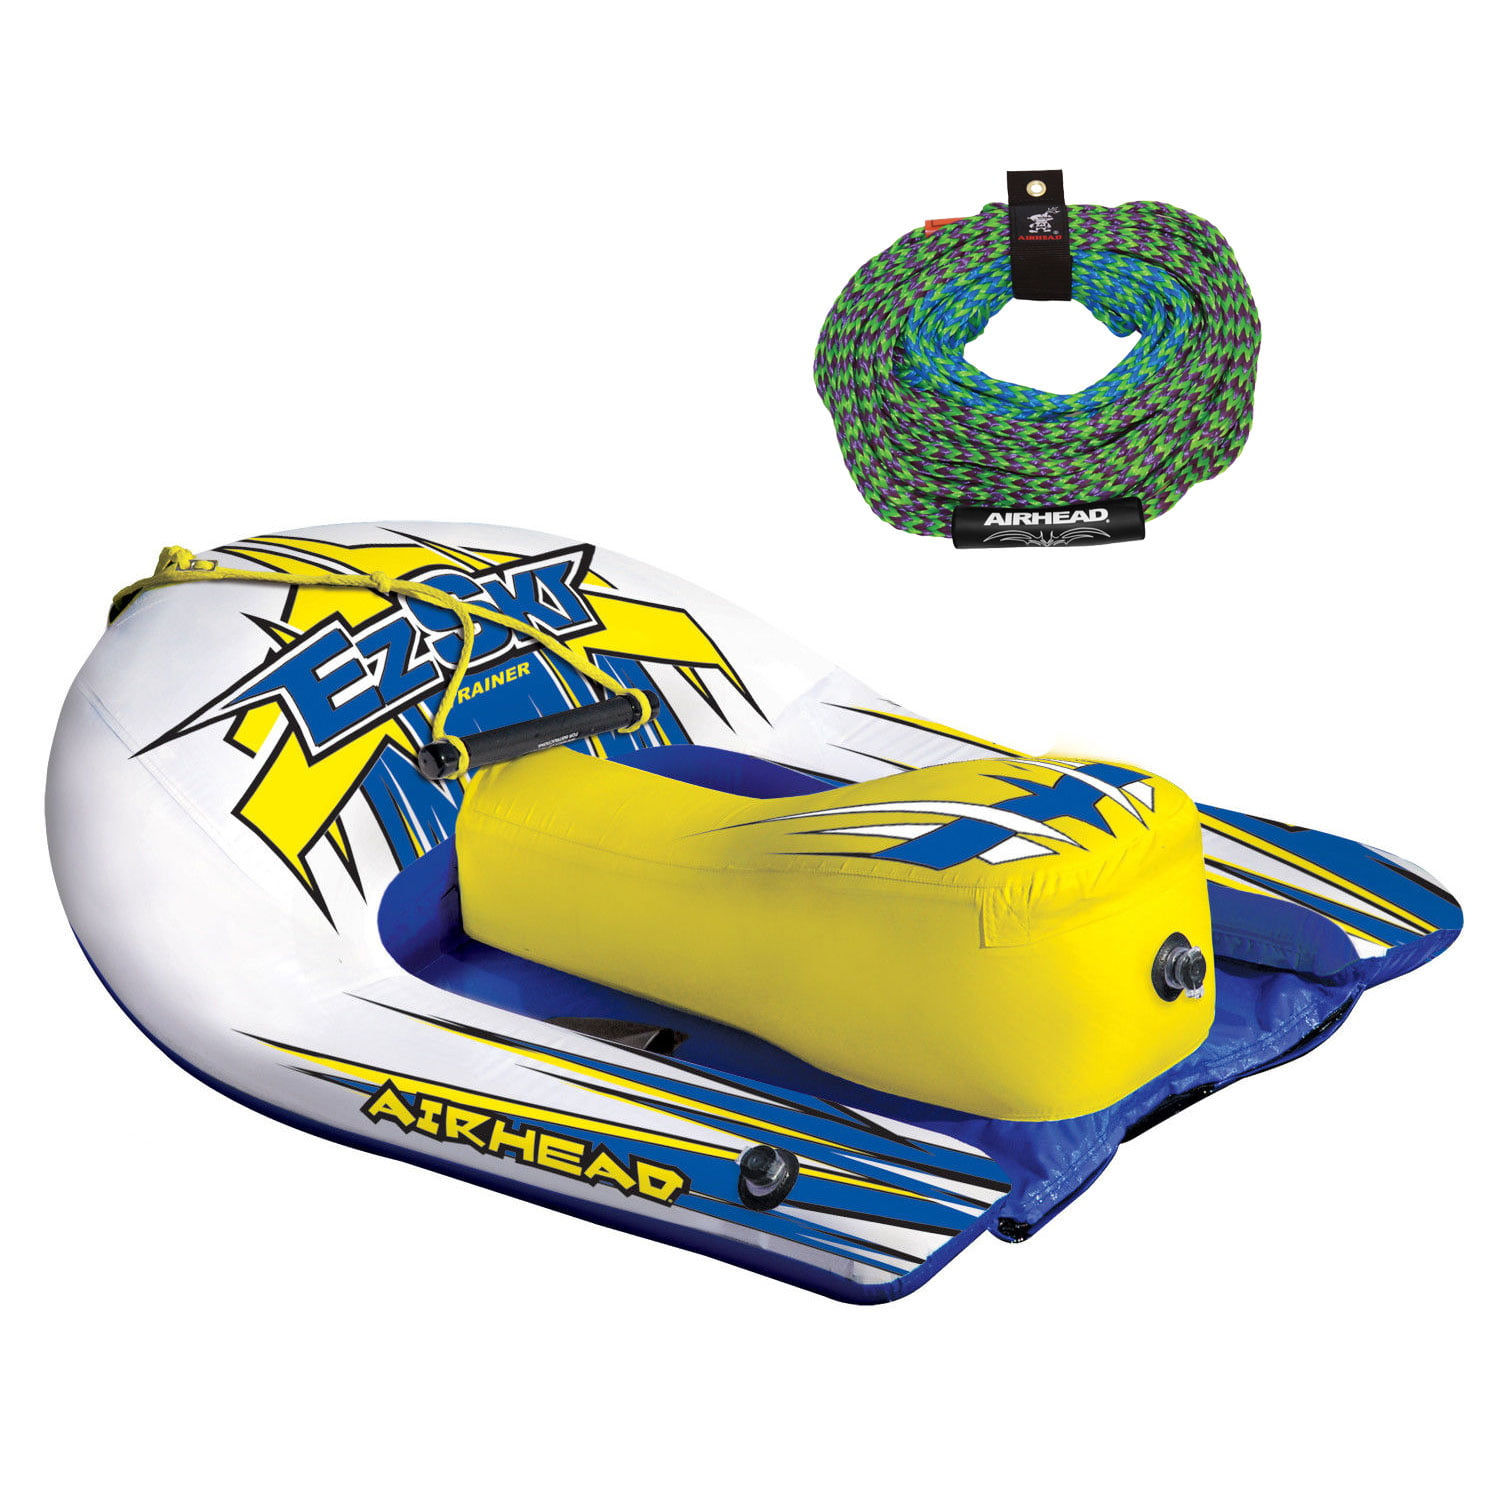 Airhead AHEZ-100 EZ Ski Inflatable Trainer Kids Single Skier Tube with Tow Rope by Kwik Tek